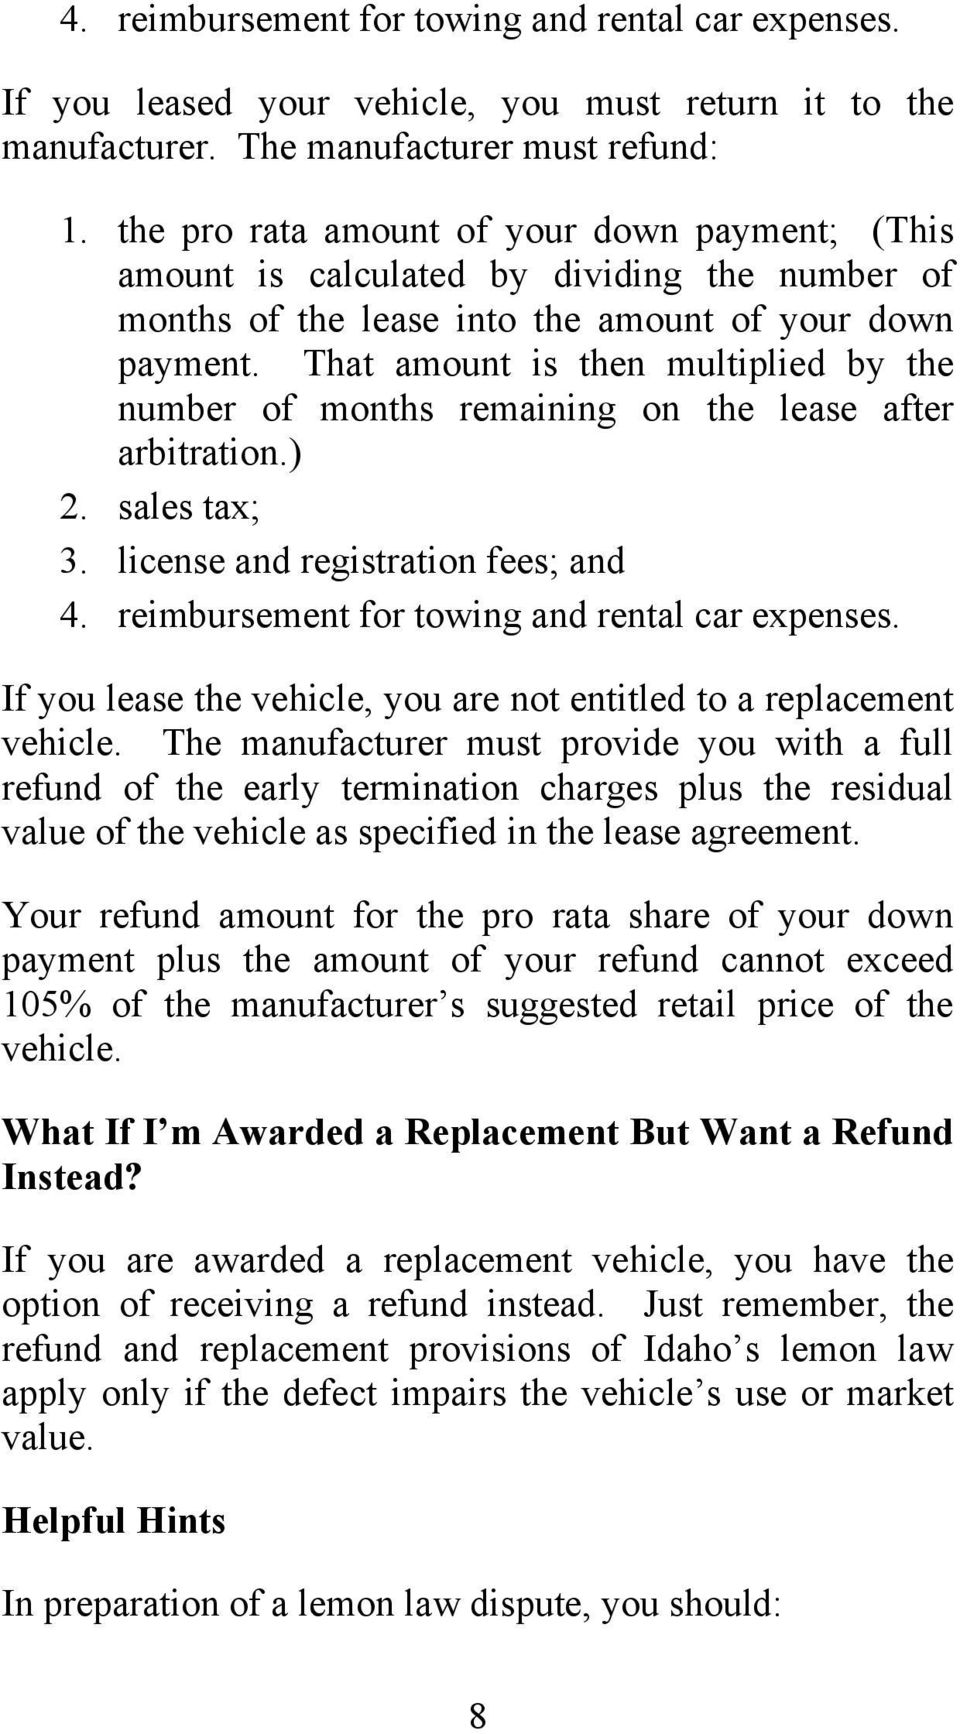 That amount is then multiplied by the number of months remaining on the lease after arbitration.) 2. sales tax; 3. license and registration fees; and 4.